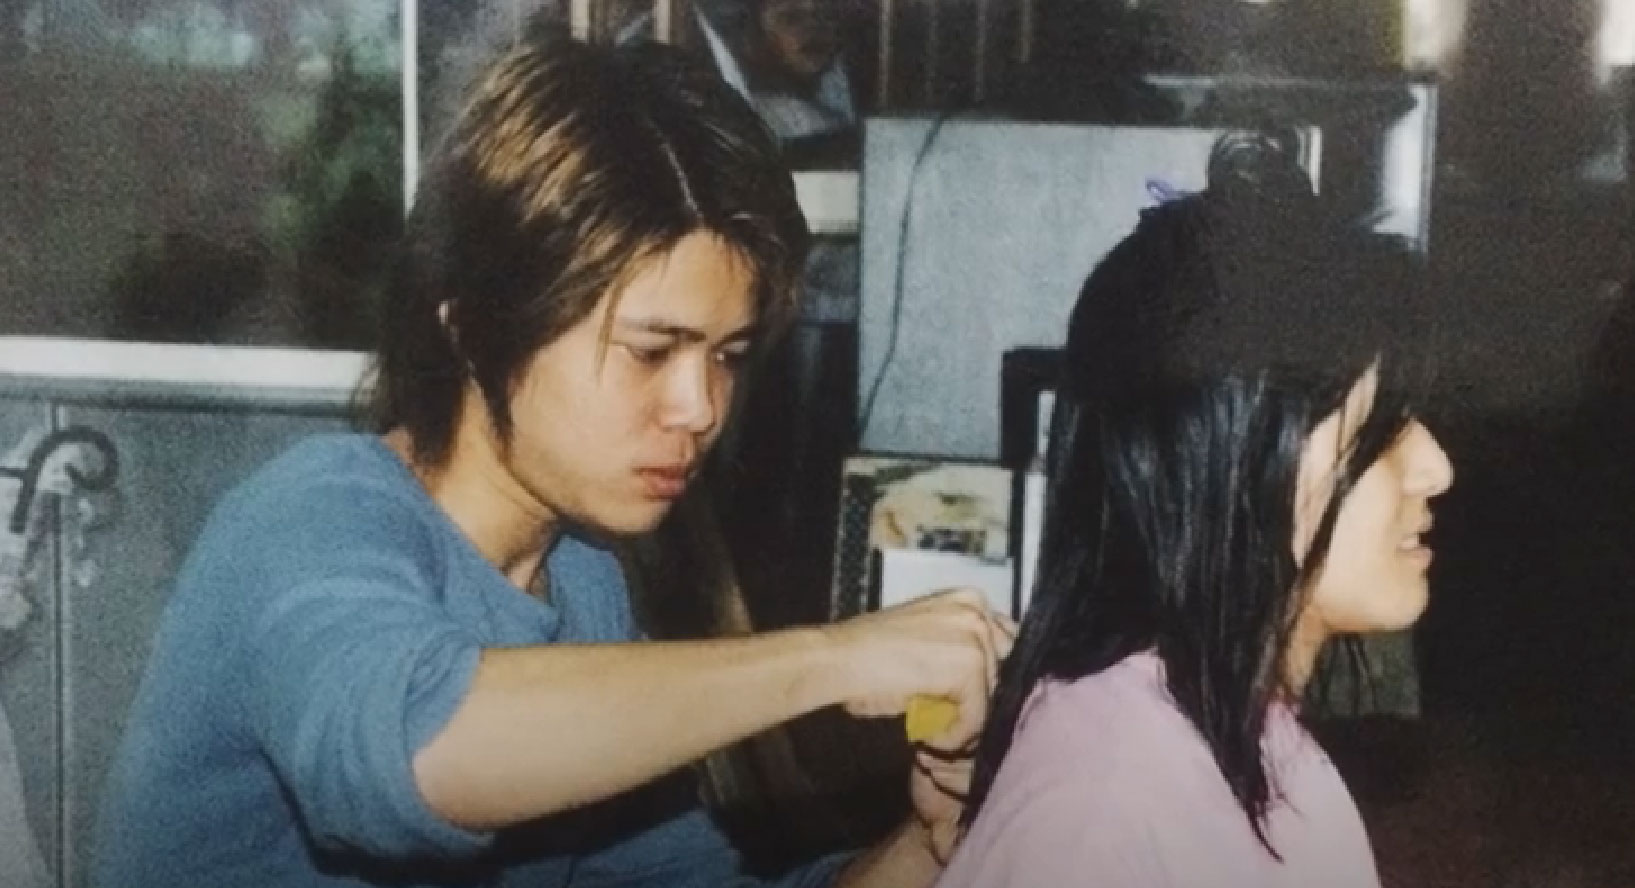 Back during Lex's early days as a barber. Image from Passion Portraits.